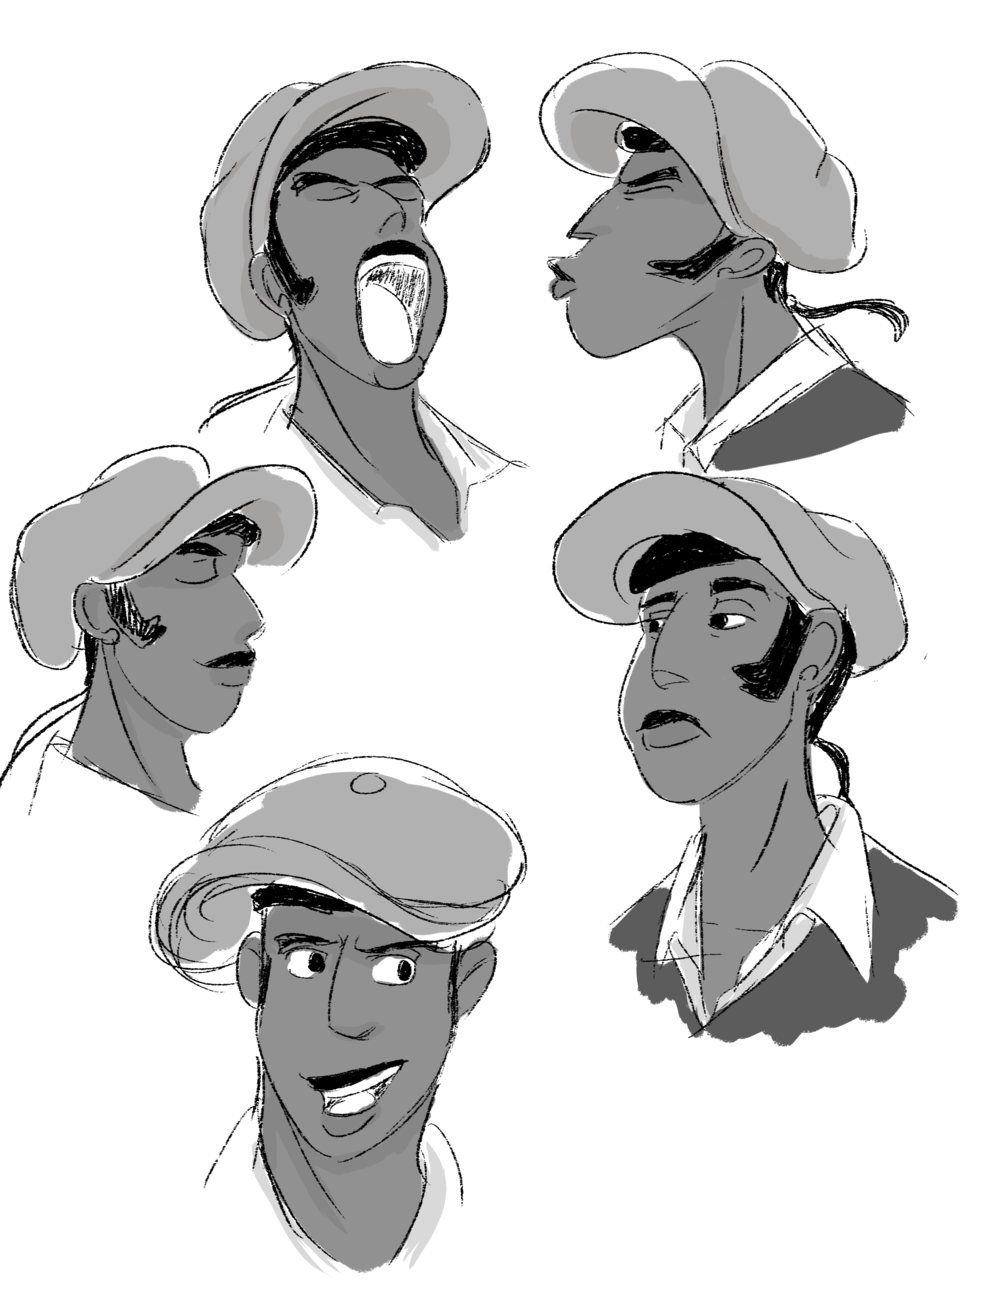 james-making-faces.png